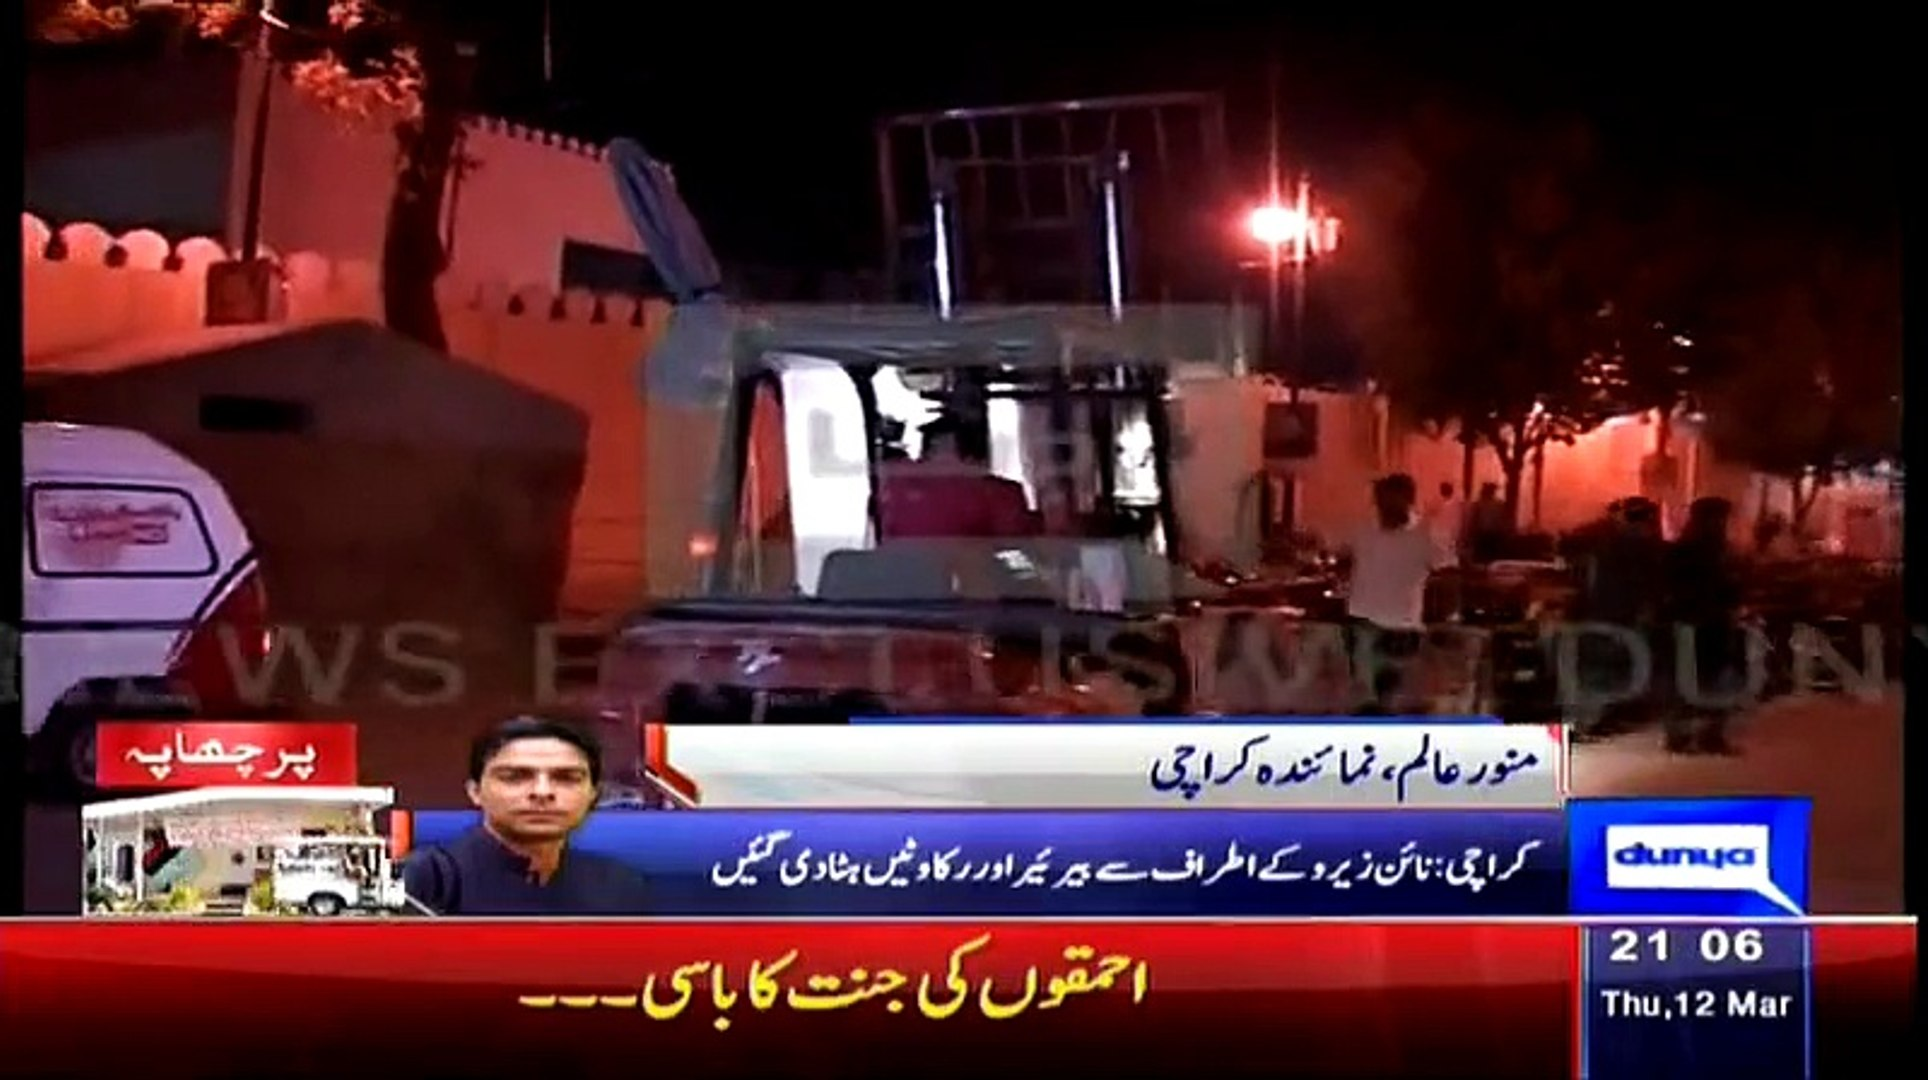 Following The Press Conference By MQM's Senior Leaders, Barriers Outside Nine Zero Were Removed